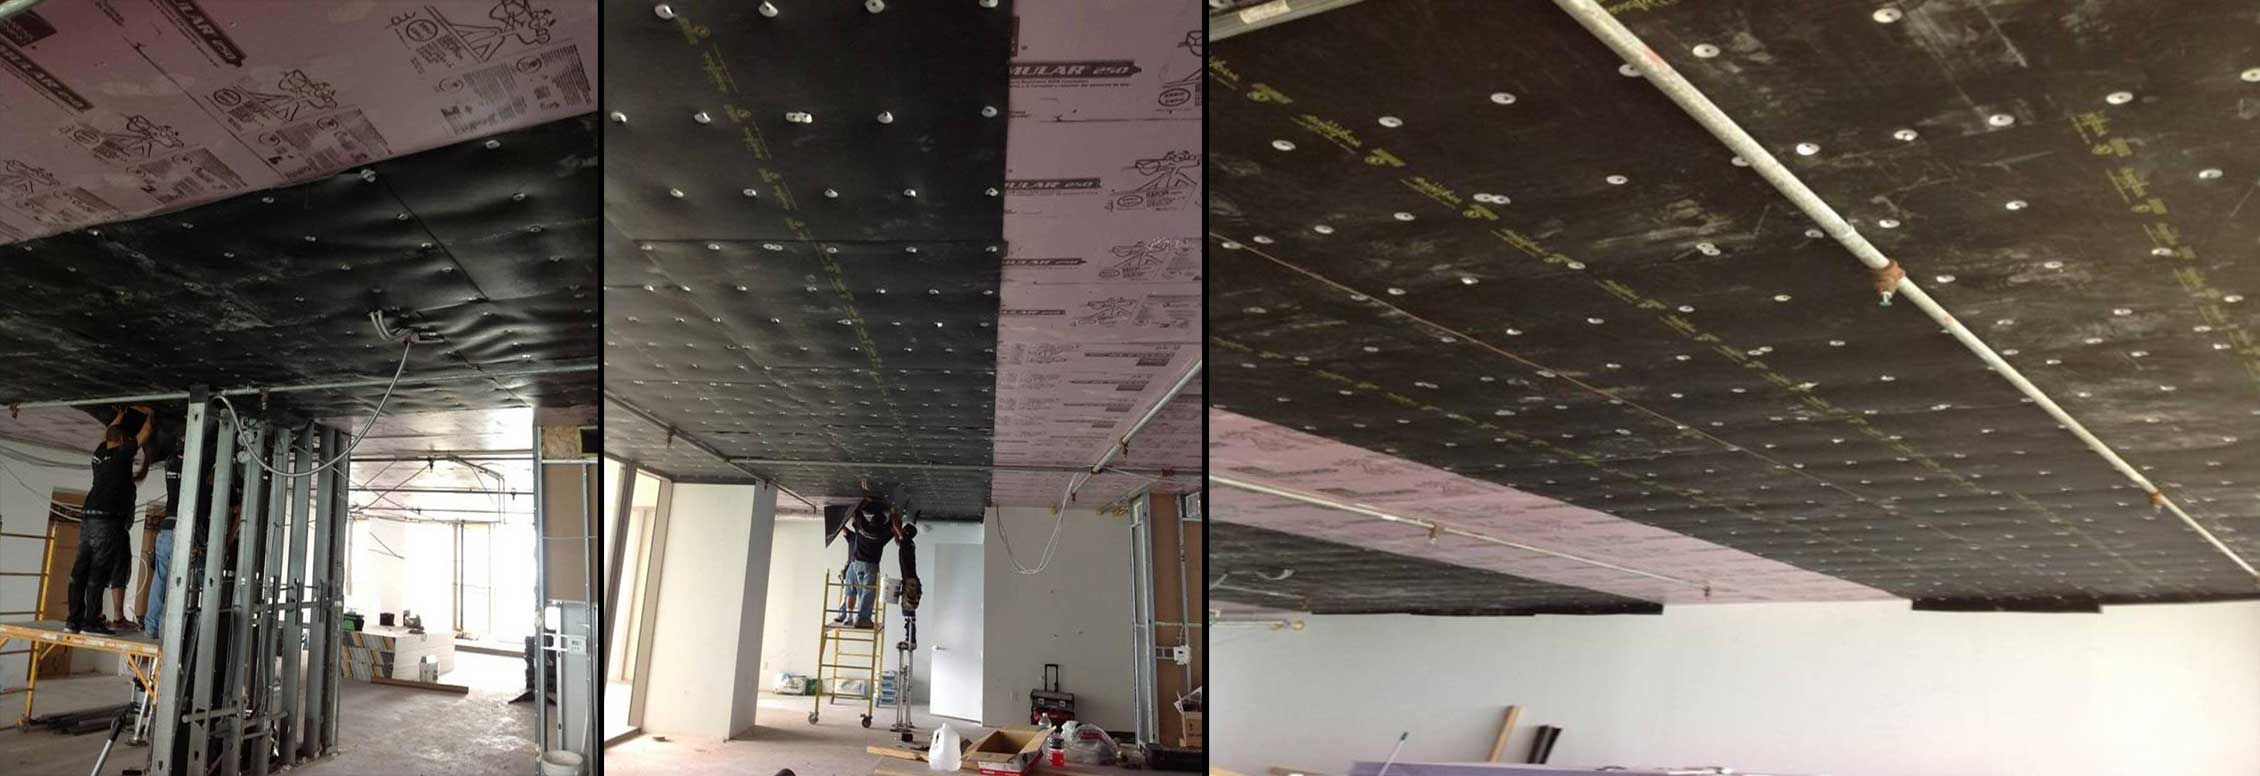 Acoustiblok 3mm Isolation Membrane Ceiling Installation